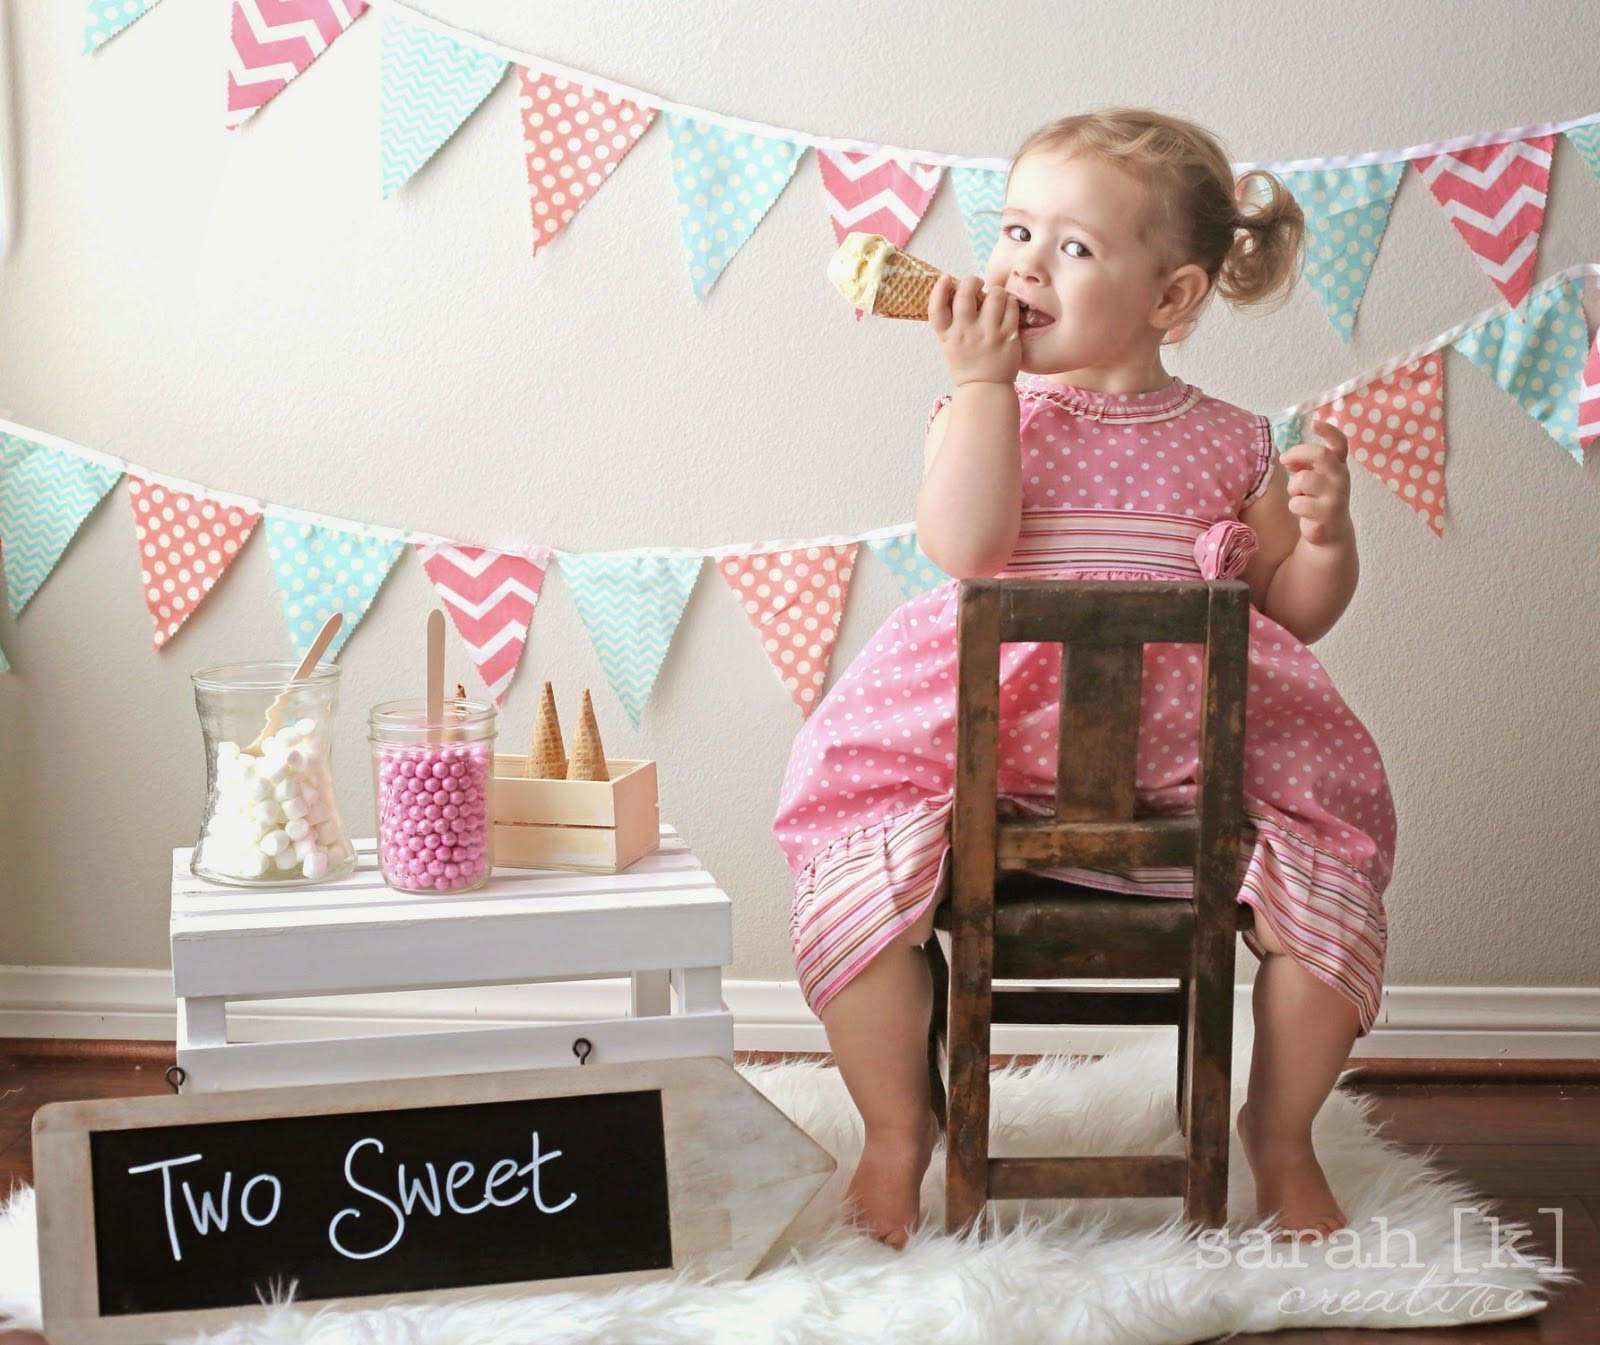 Birthday Party Ideas For 2 Year Girl  Toddler Party Games 2 Year Olds